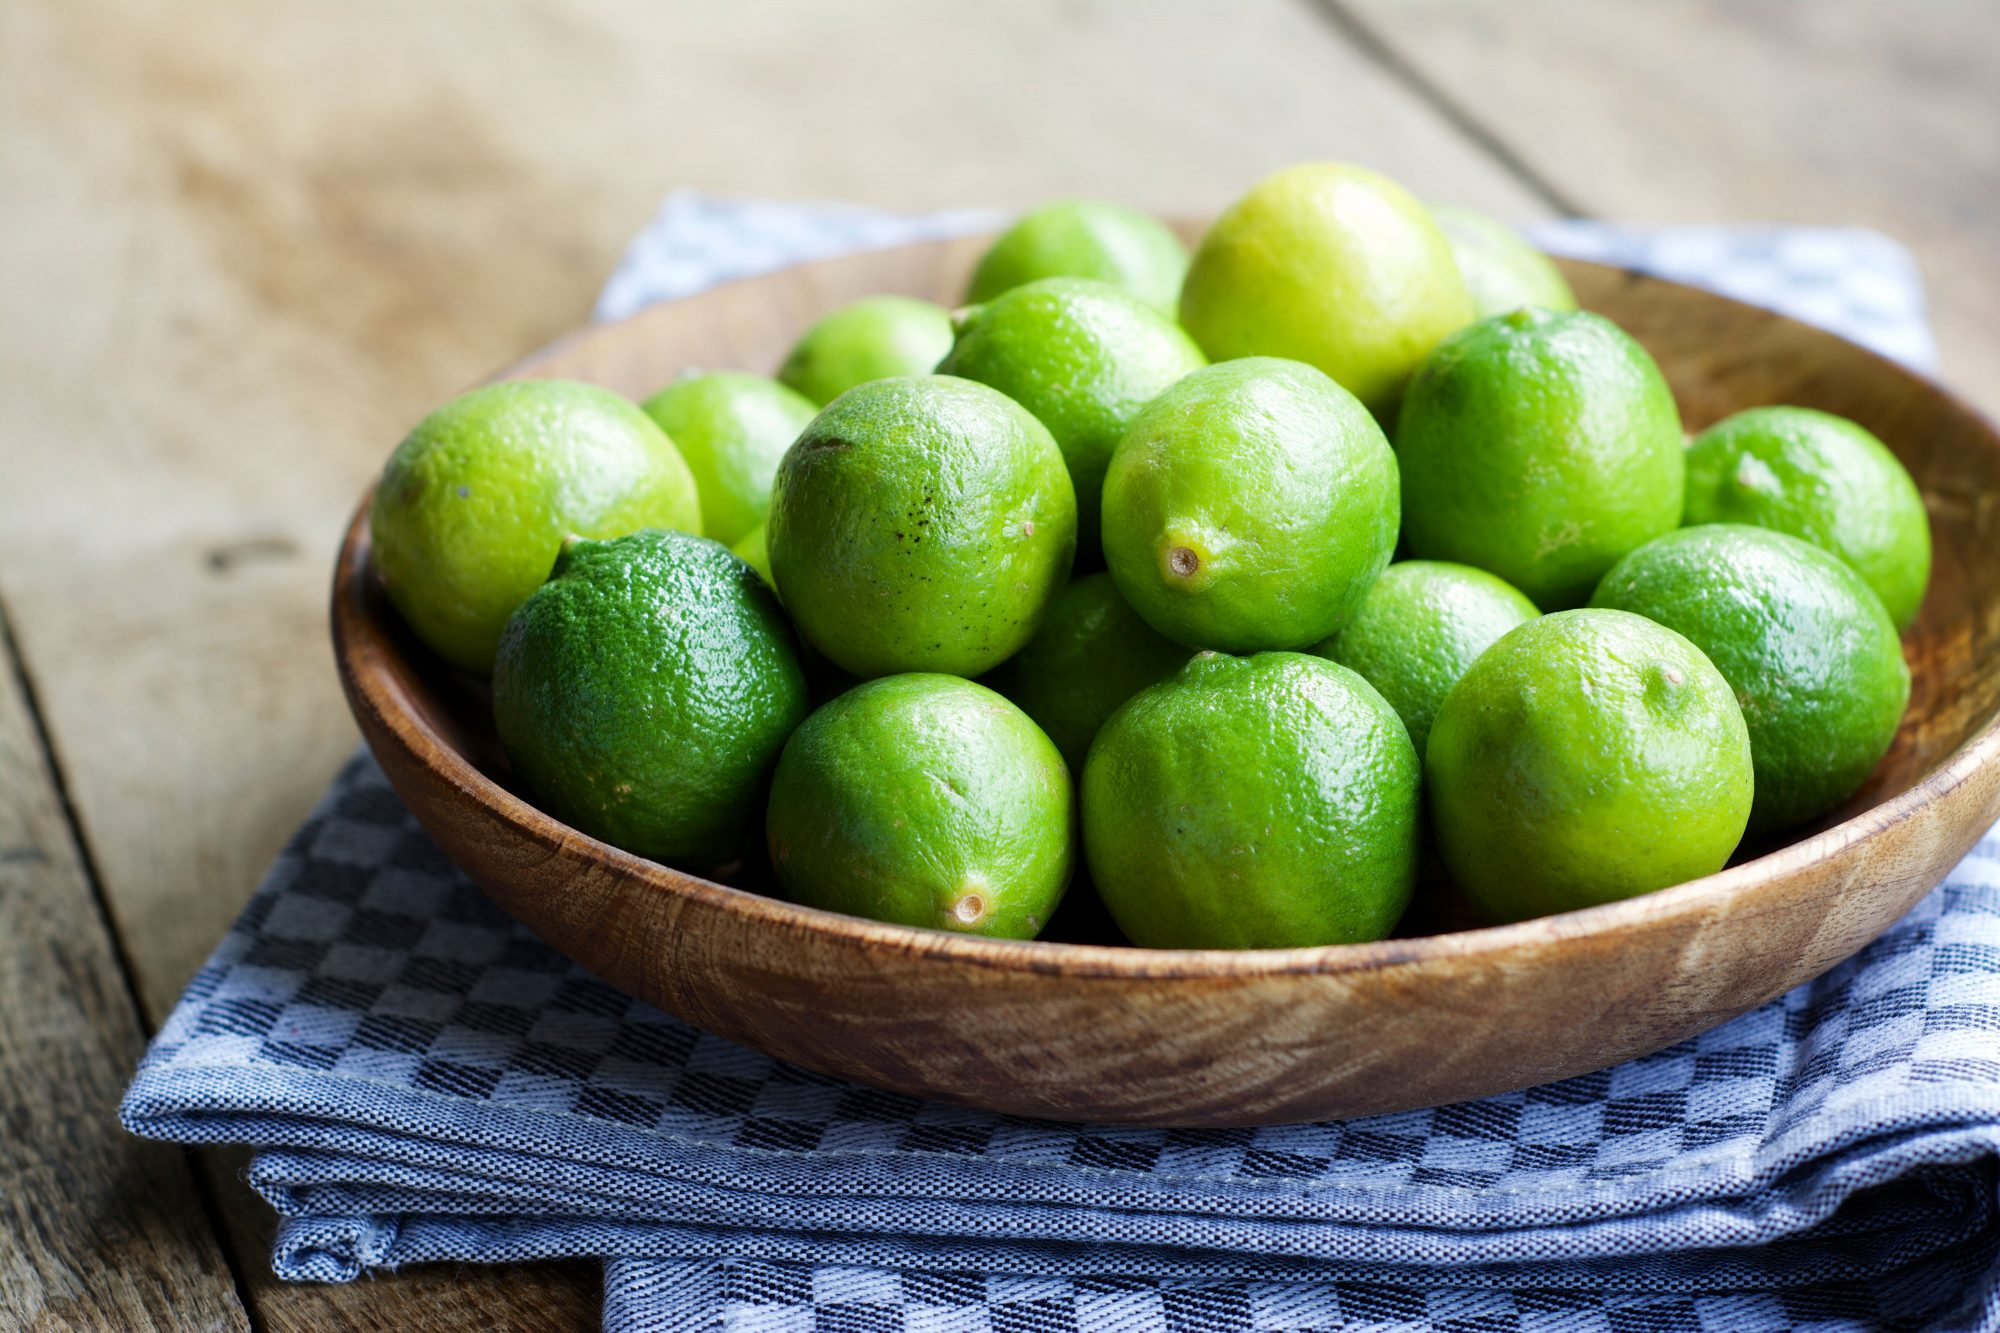 The Difference Between Key Limes and Regular Limes